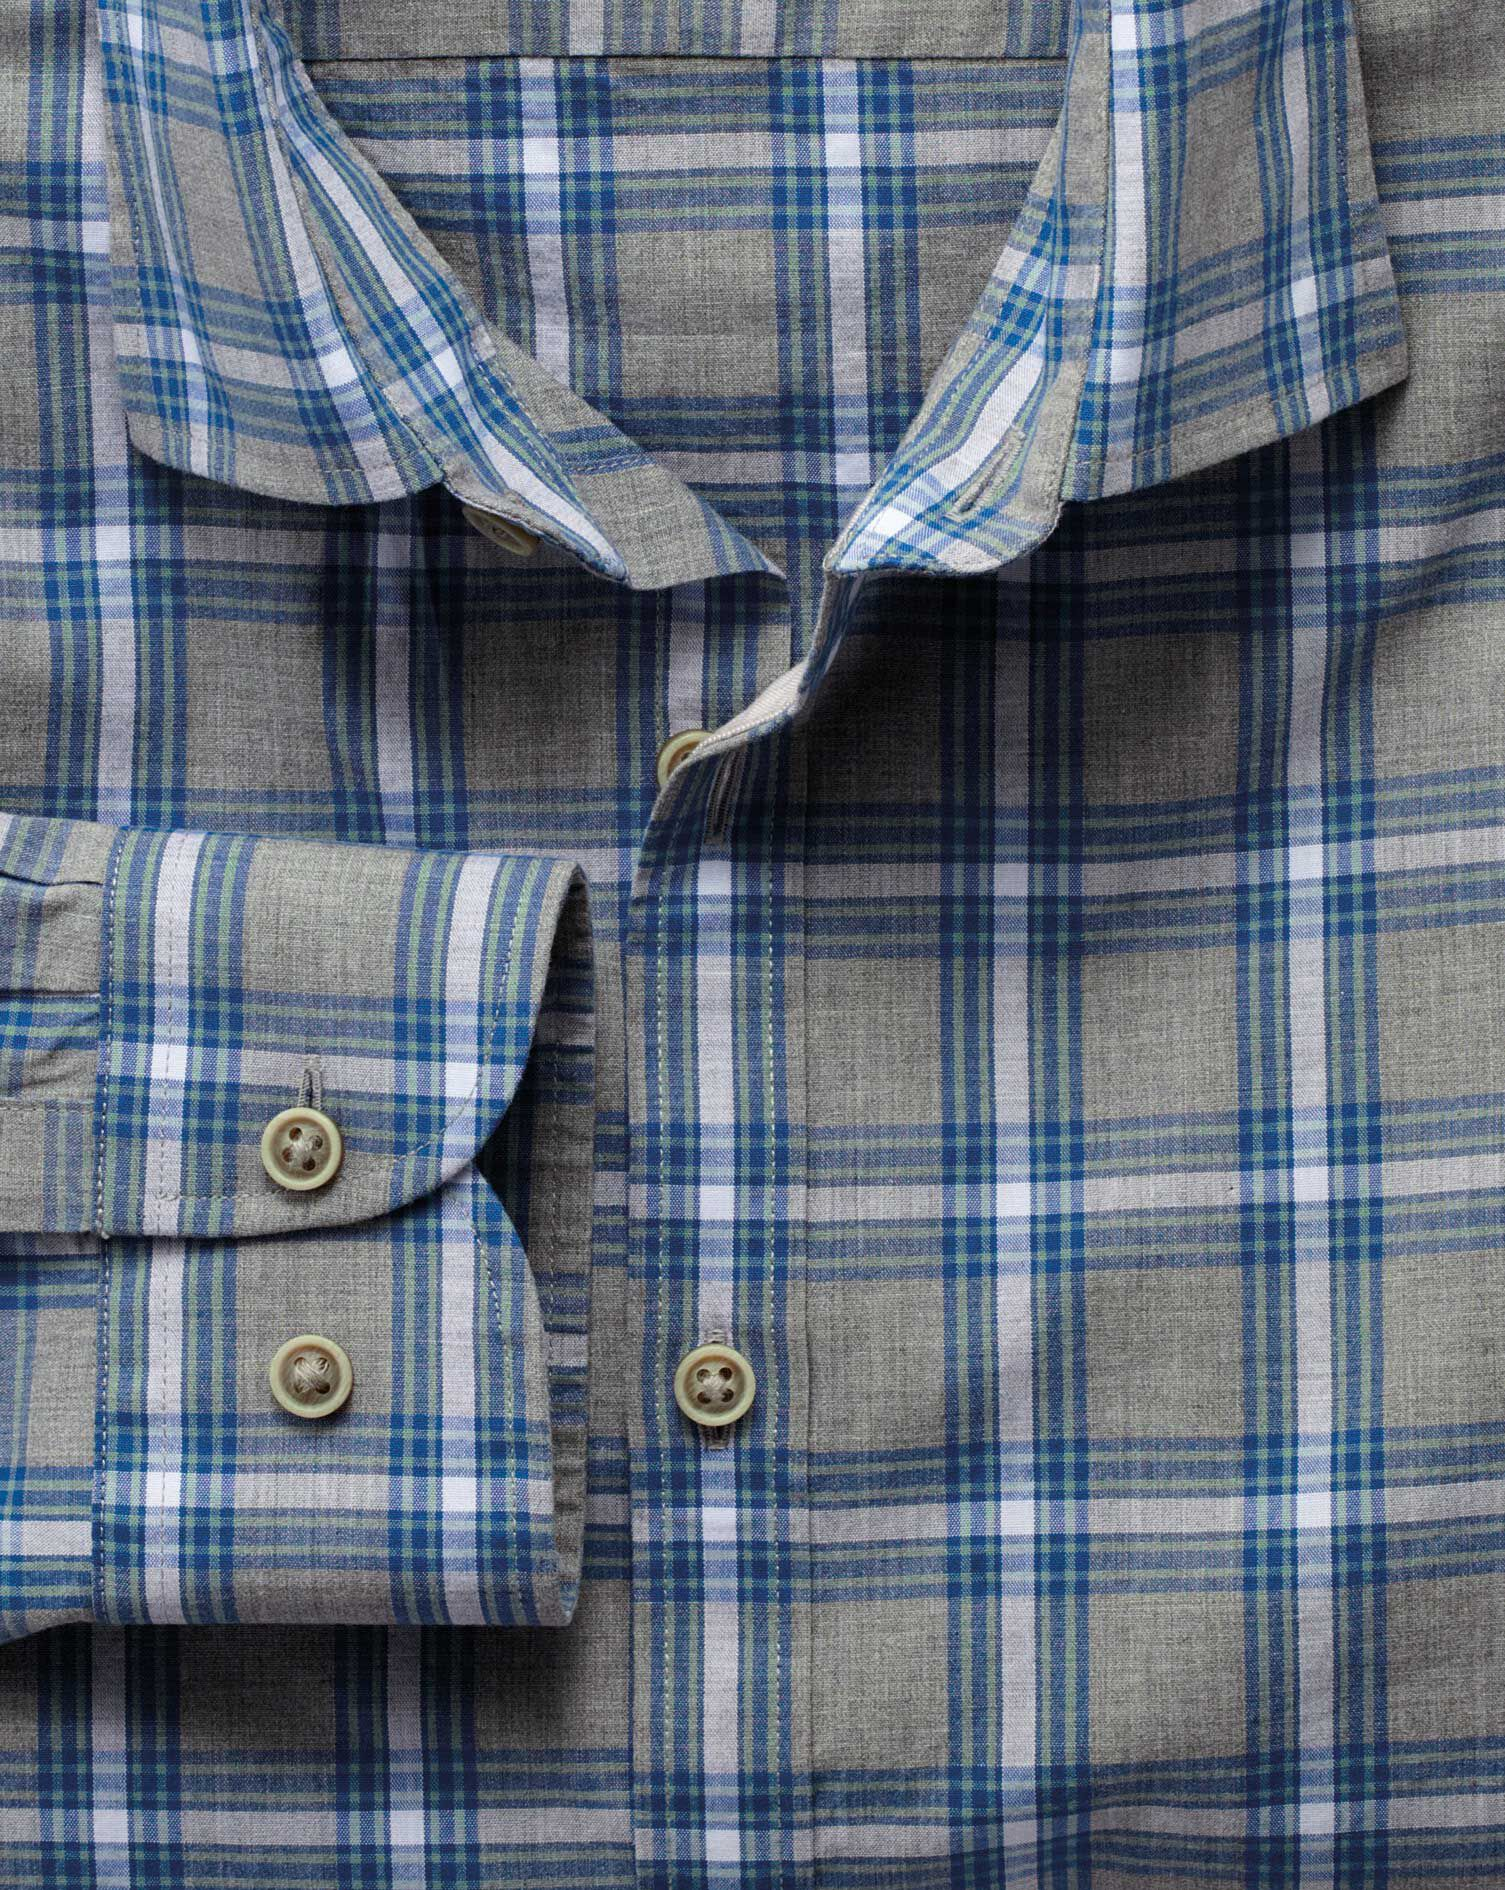 Slim Fit Grey and Sky Blue Check Heather Cotton Shirt Single Cuff Size XS by Charles Tyrwhitt